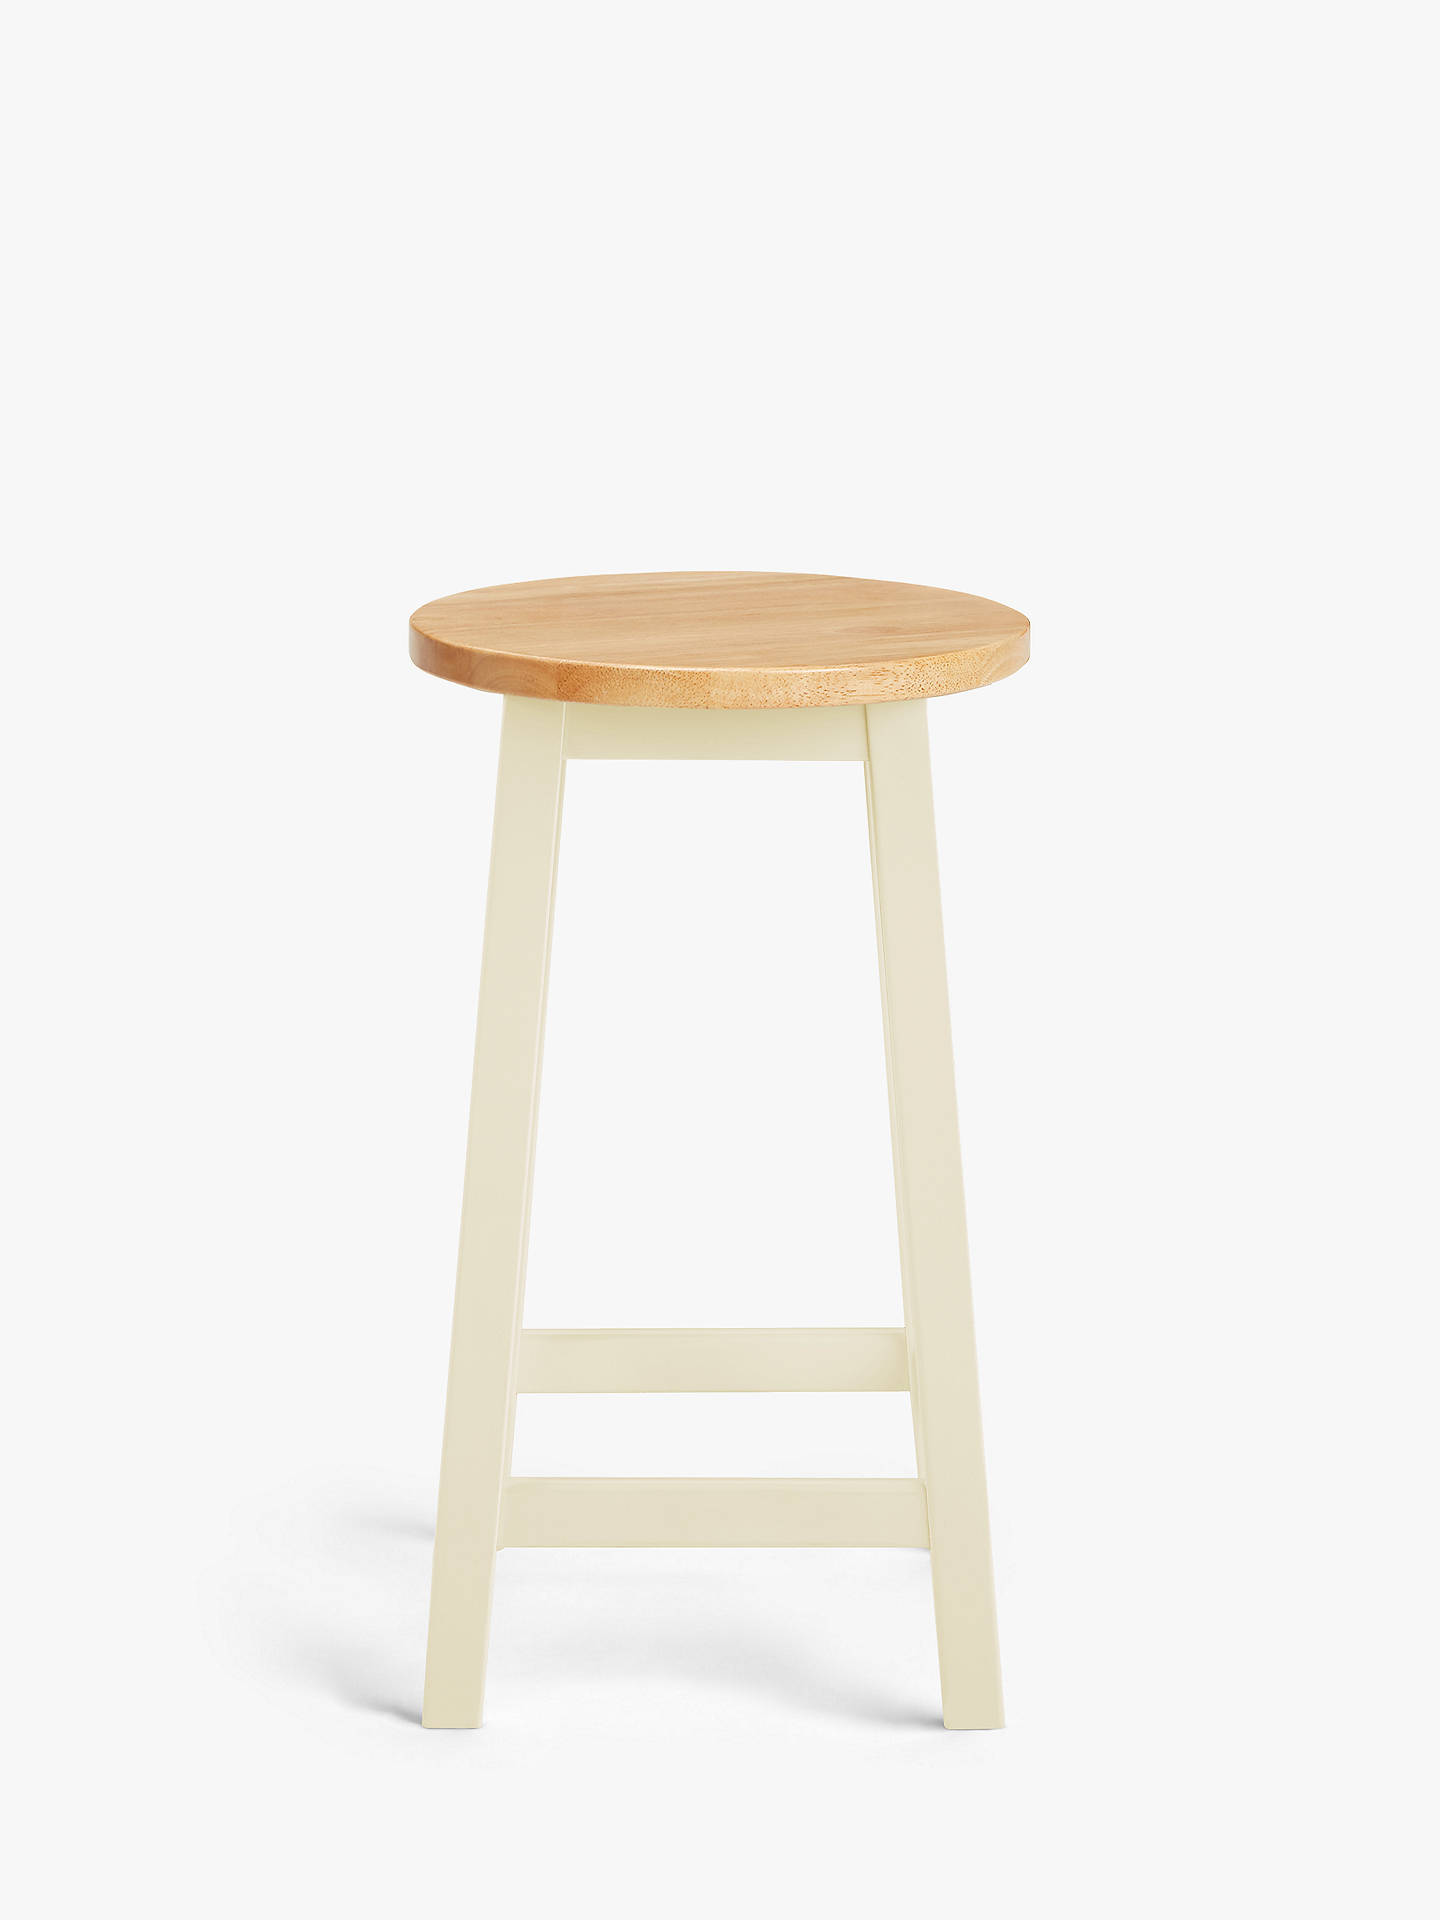 Superb John Lewis Partners Adler Bar Stool Gmtry Best Dining Table And Chair Ideas Images Gmtryco